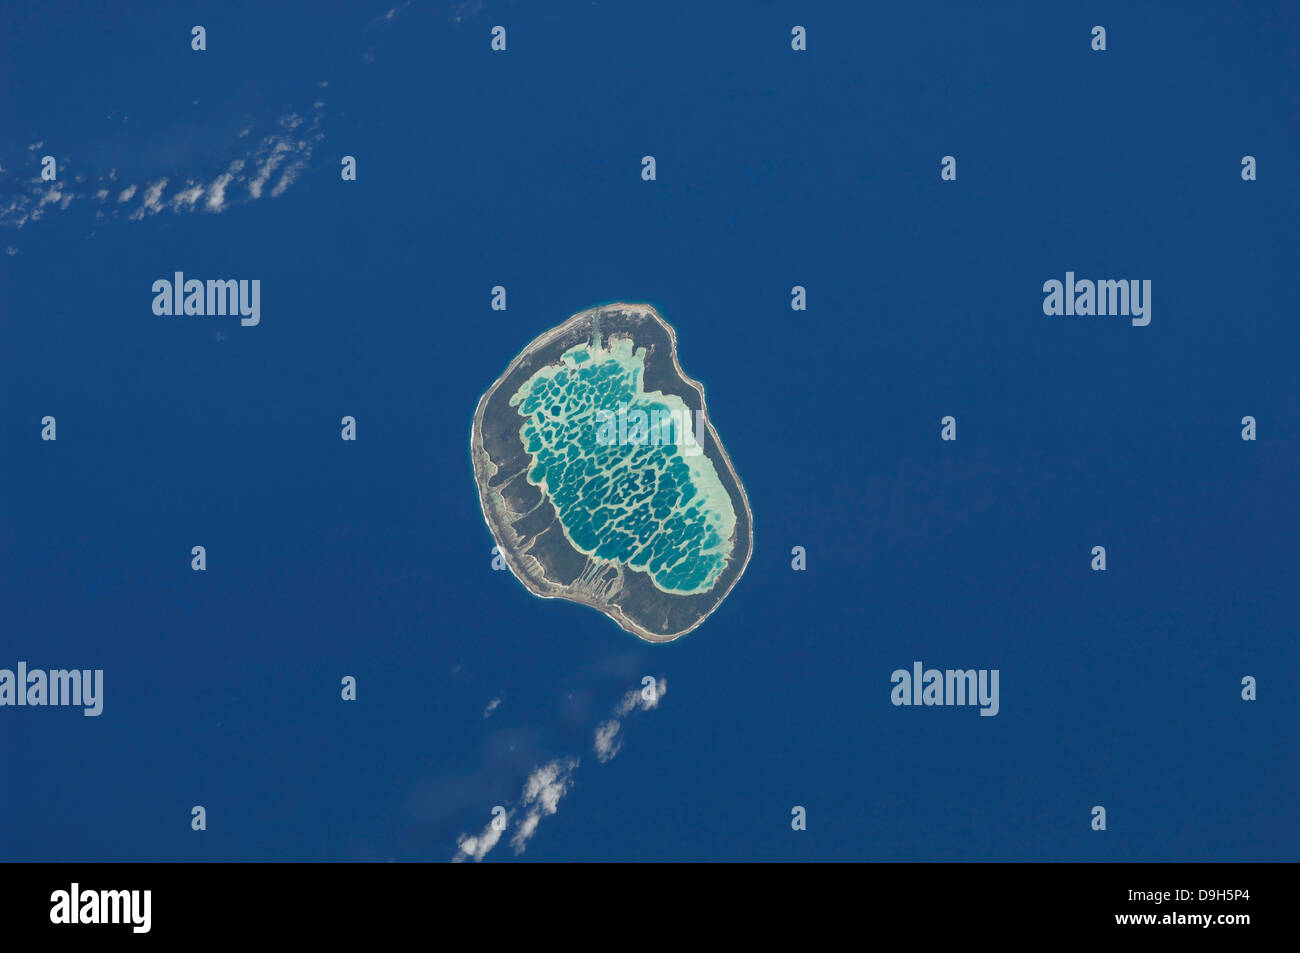 Mataiva Atoll, Tuamotu Archipelago in the South Pacific Ocean. - Stock Image